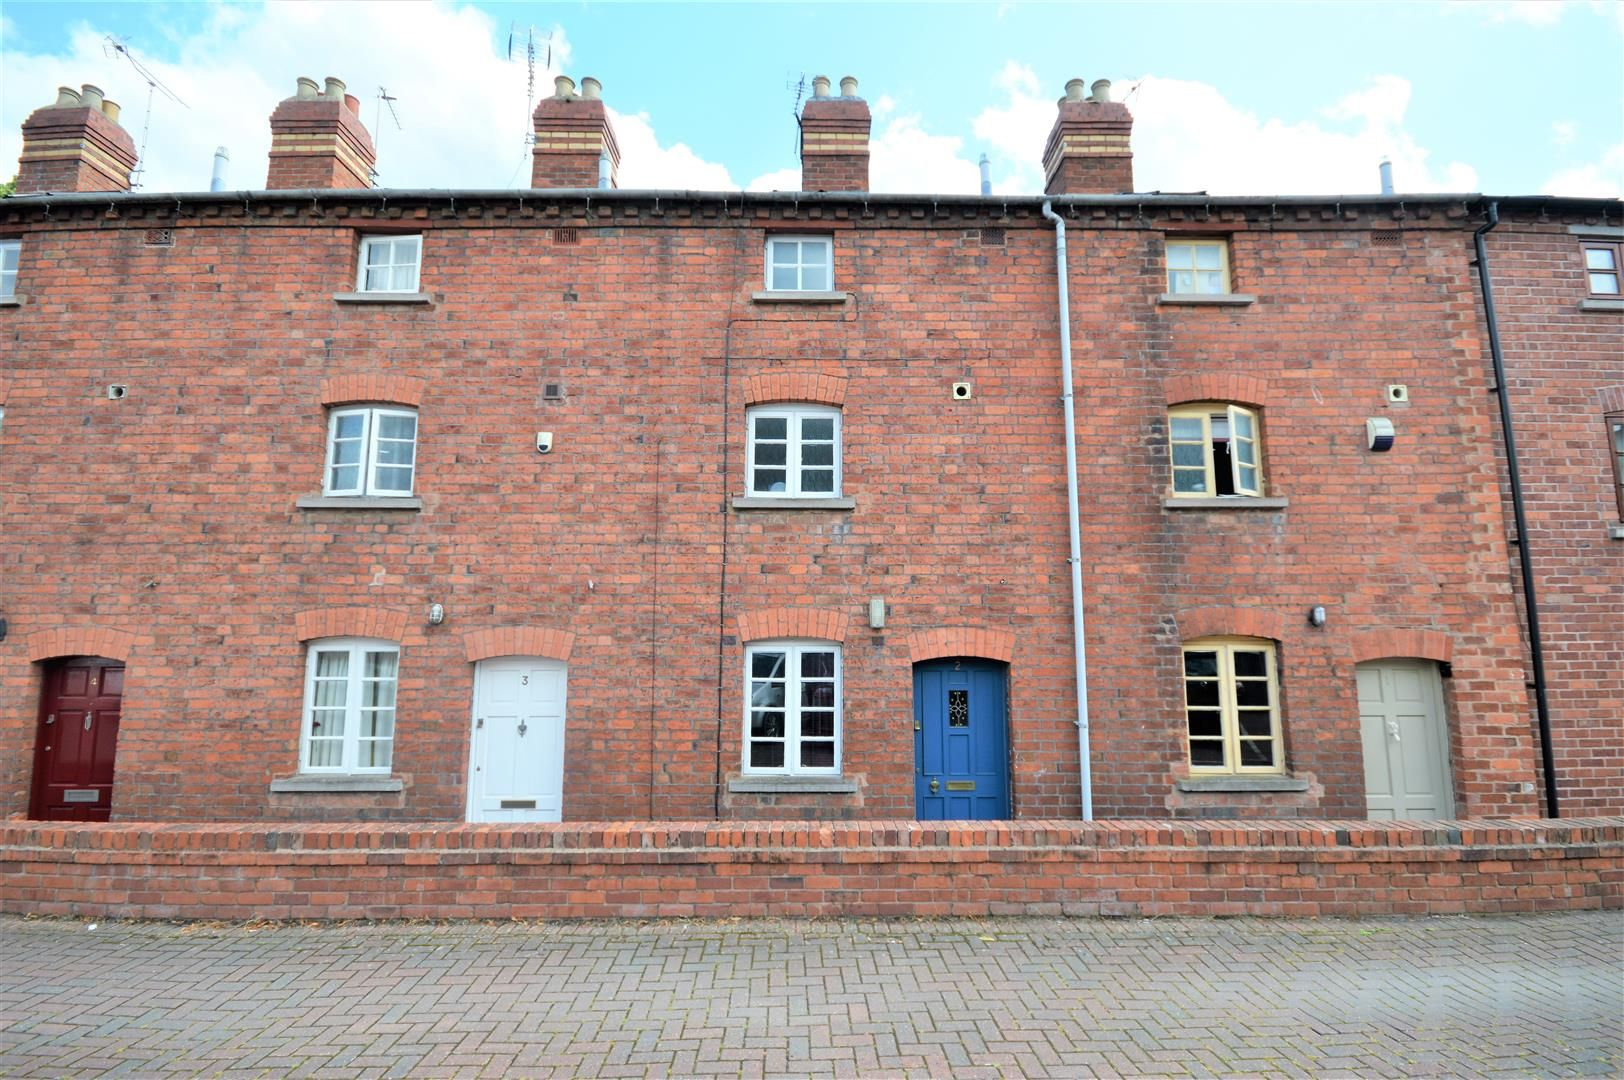 3 bed town-house for sale in Hereford 1